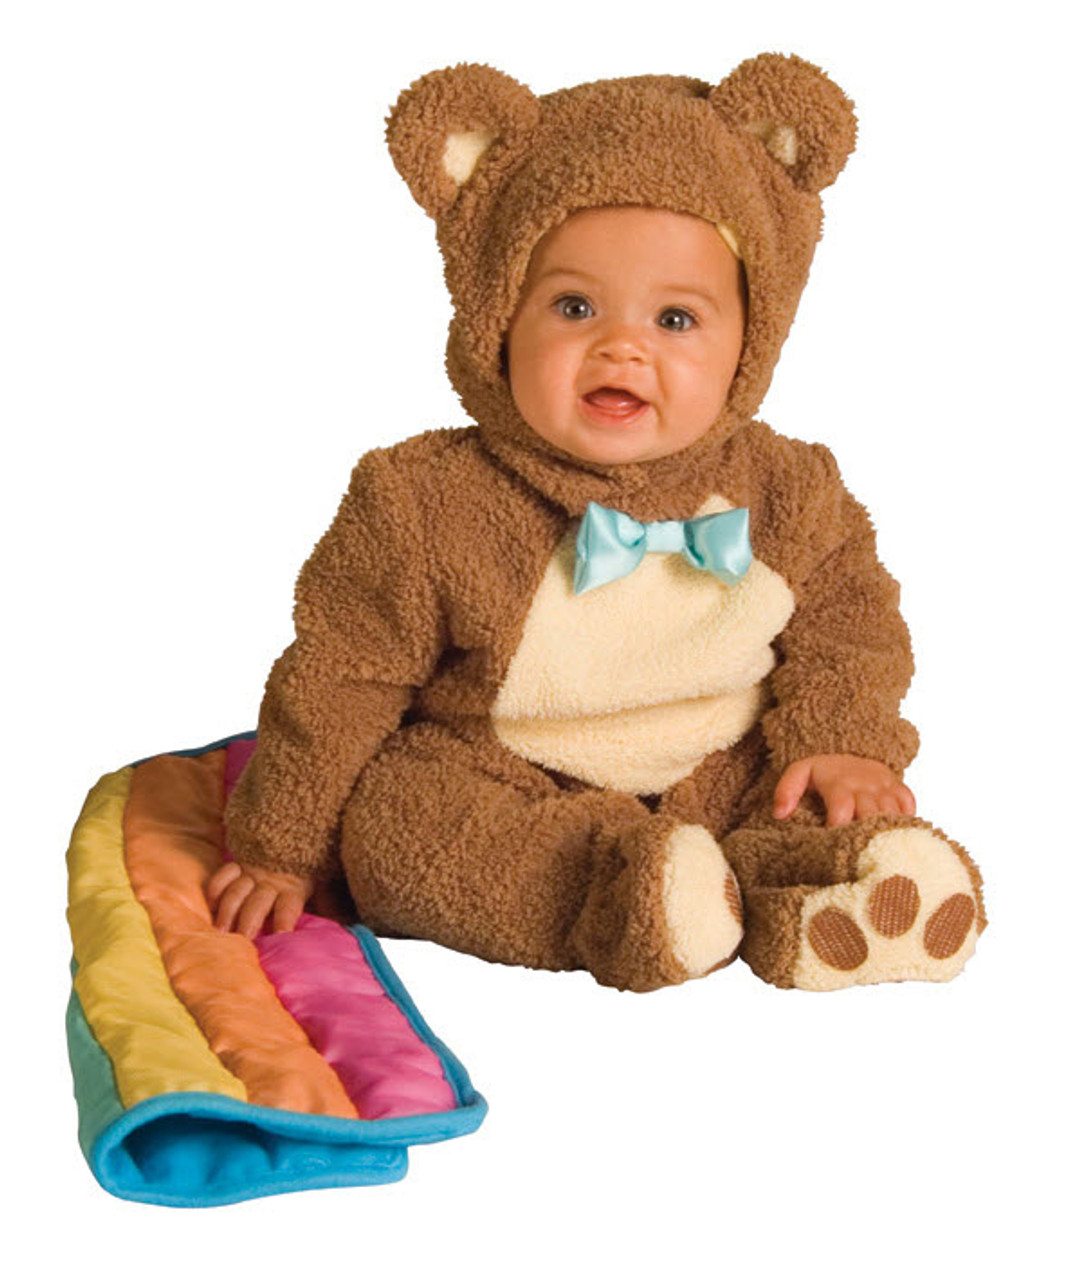 Mischievous Monkey Infant Toddler Baby Costume Animal Safari Halloween Party